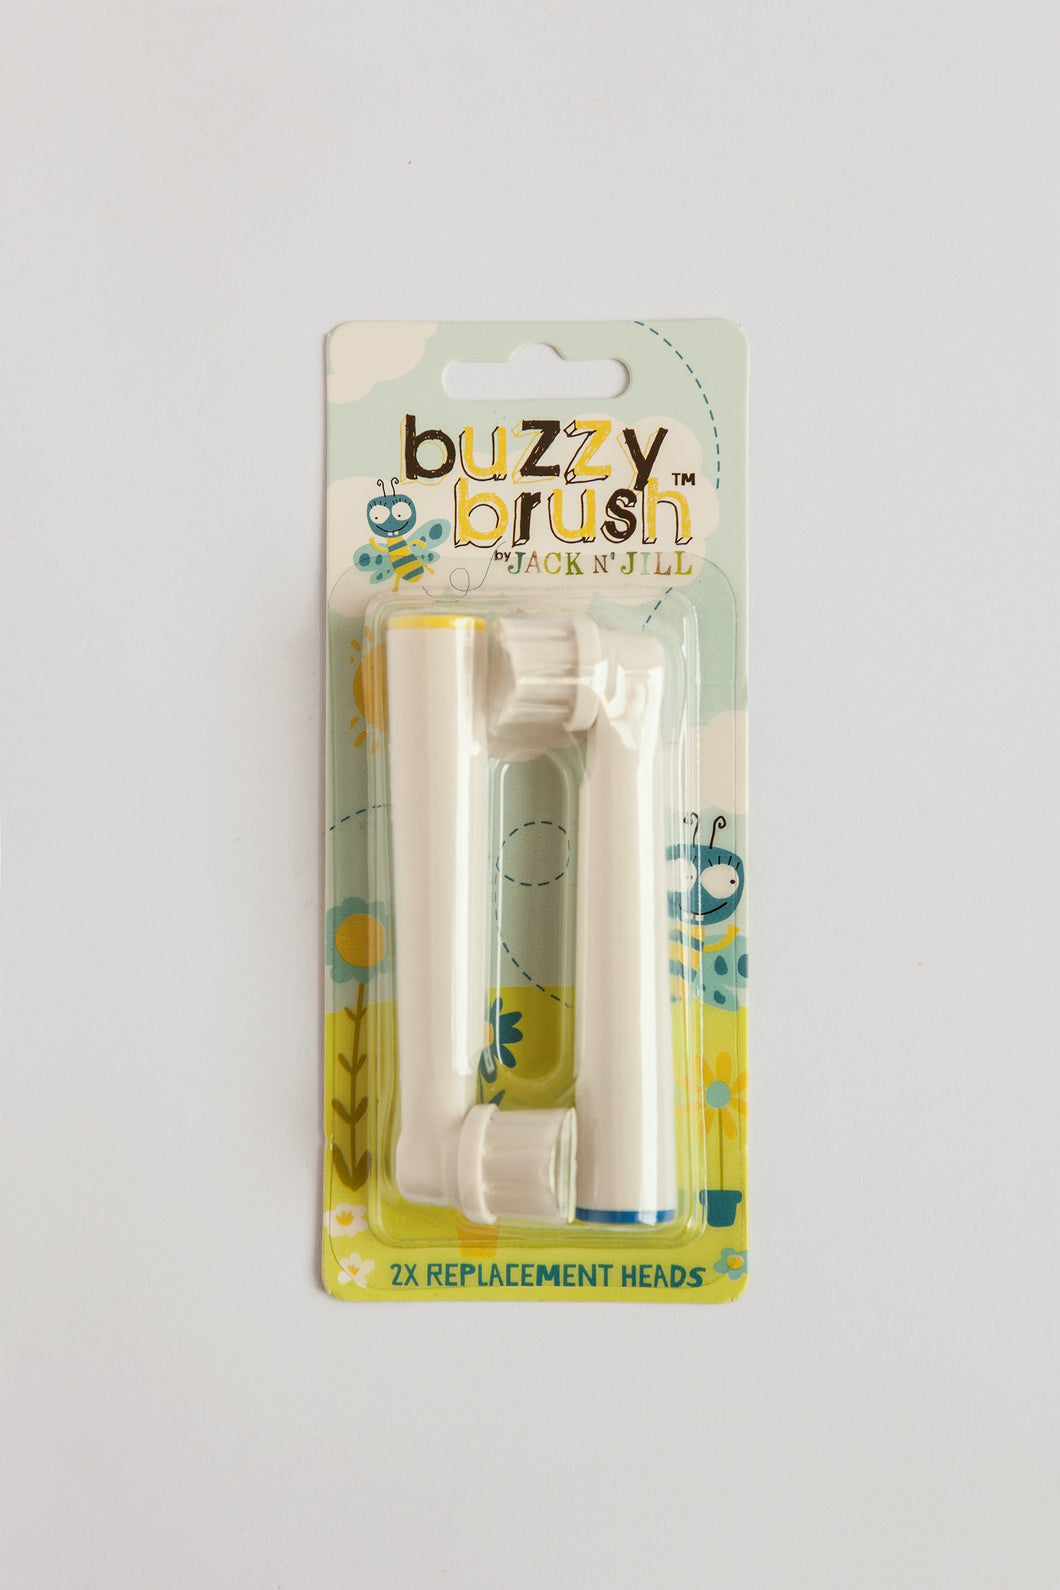 Jack N' Jill Buzzy Replacement Brushes Buzzy Brush